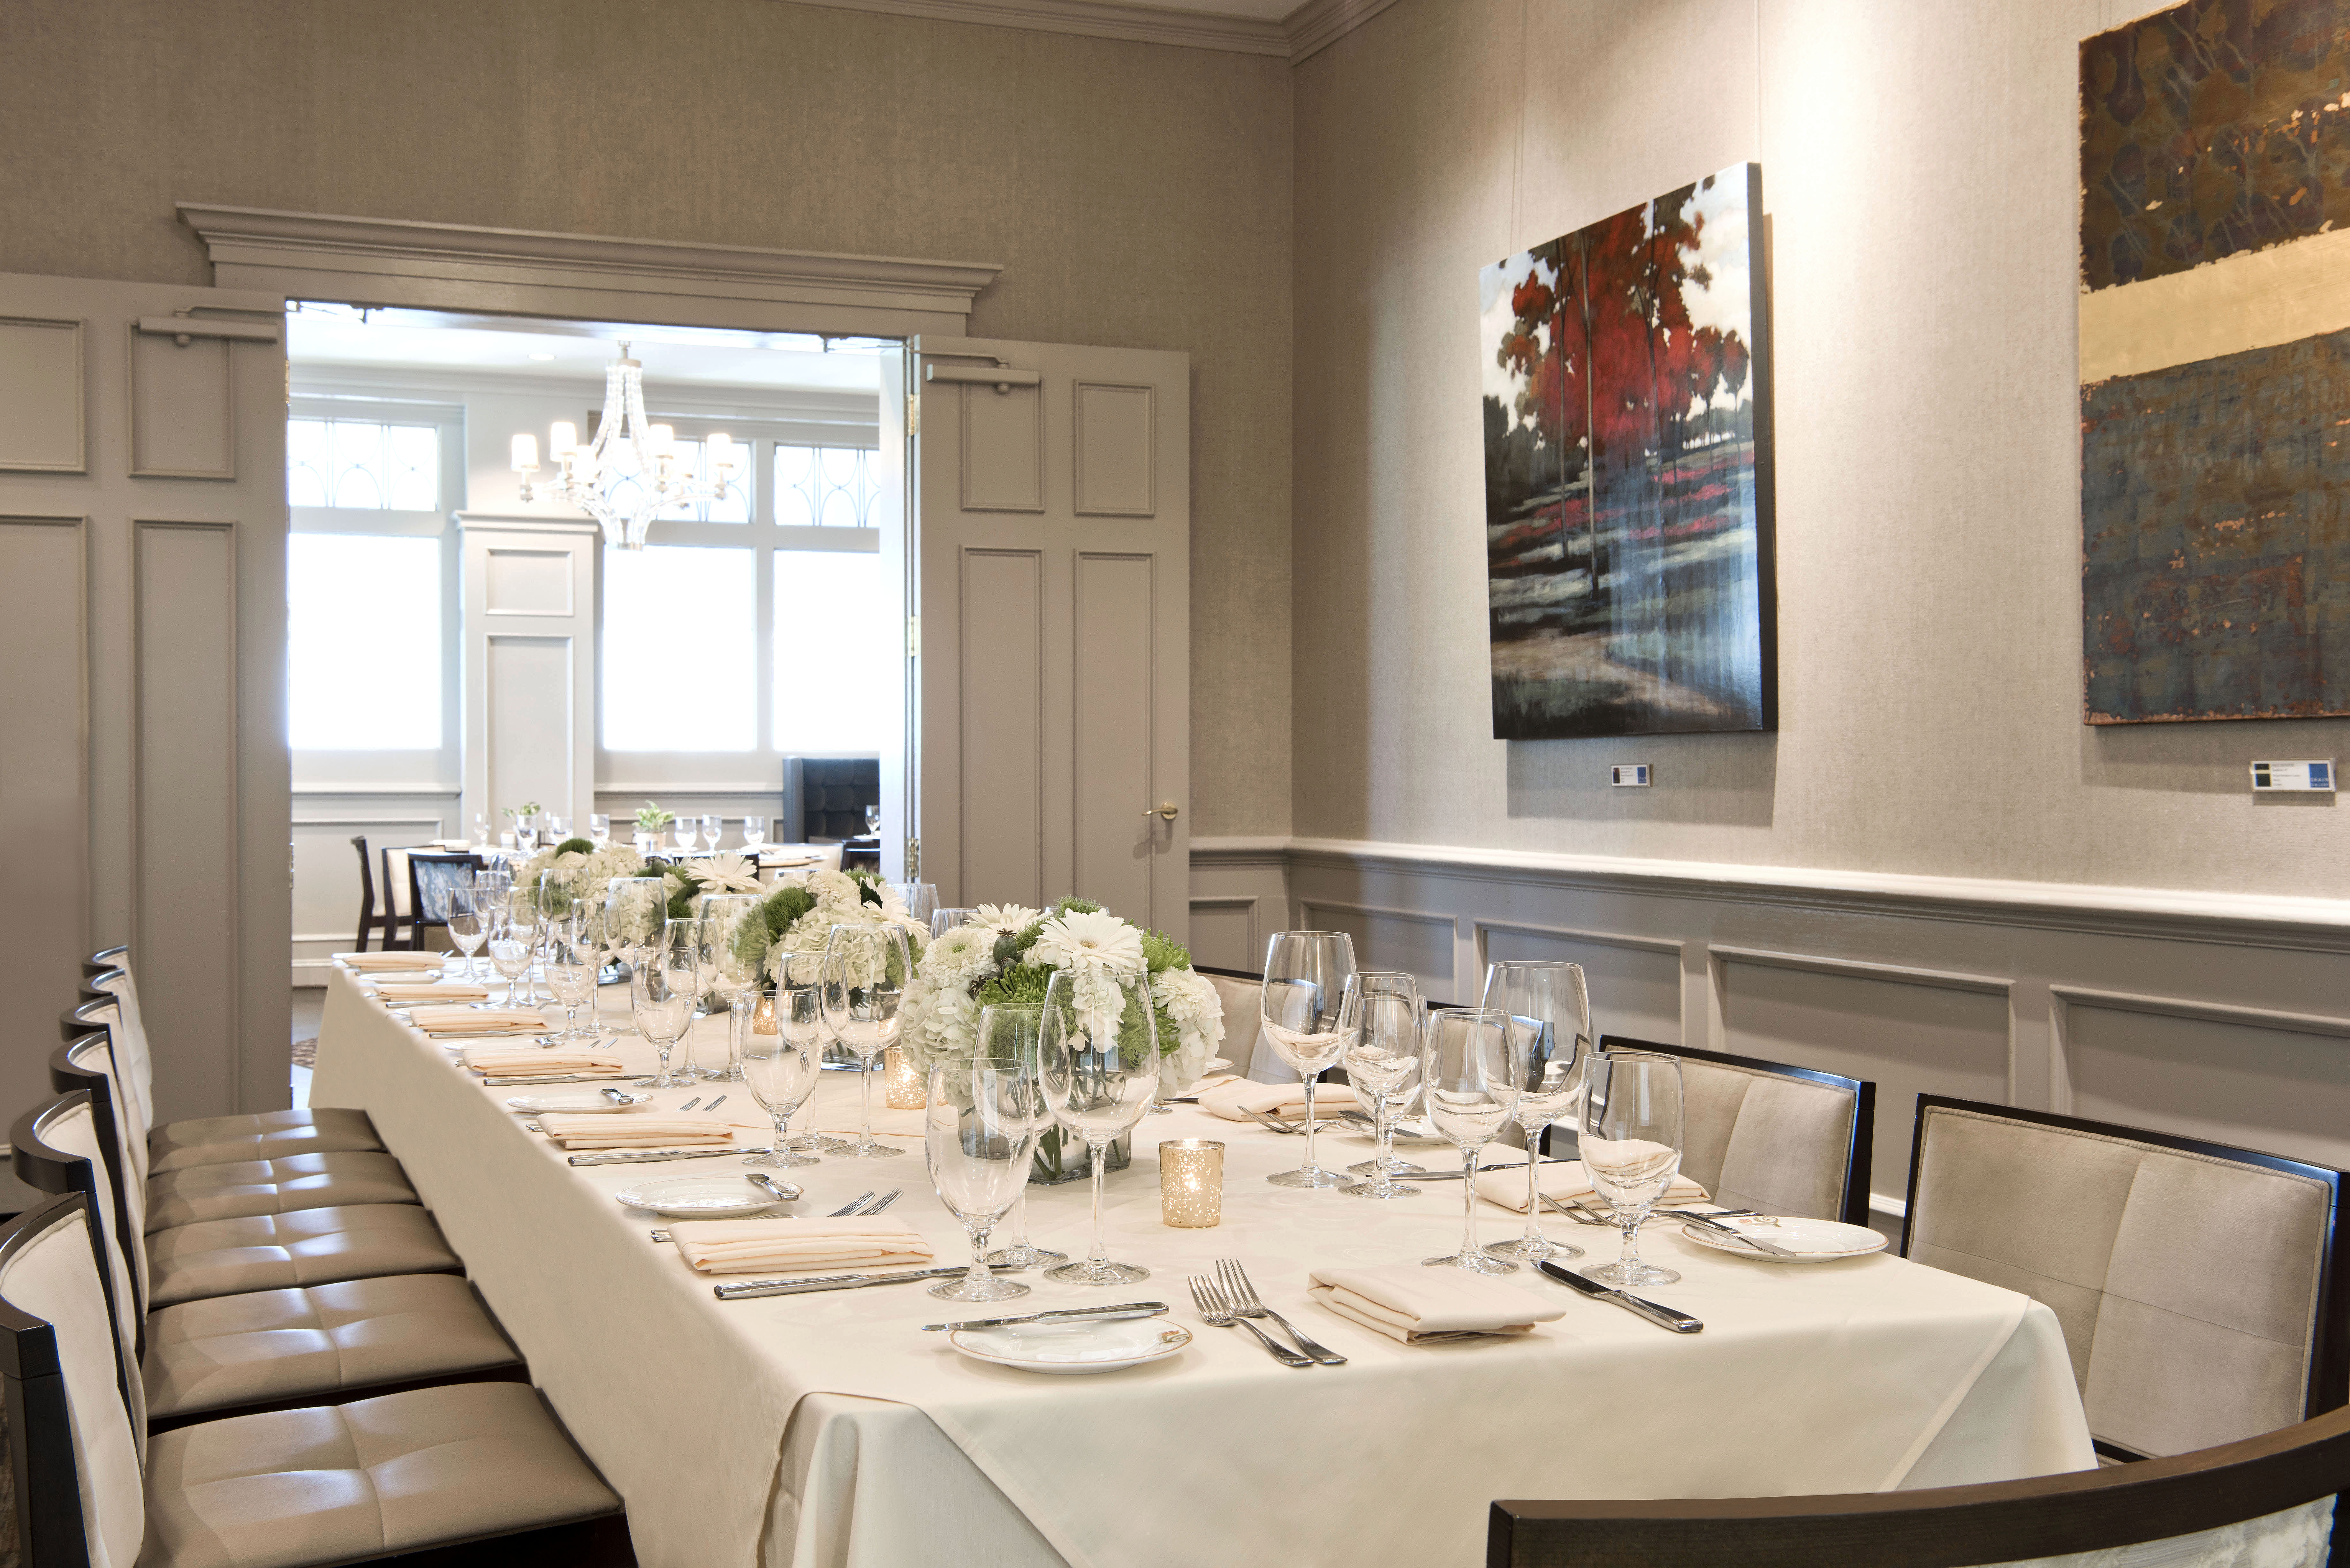 Private Dining The Gallery Restaurant Charlotte NC